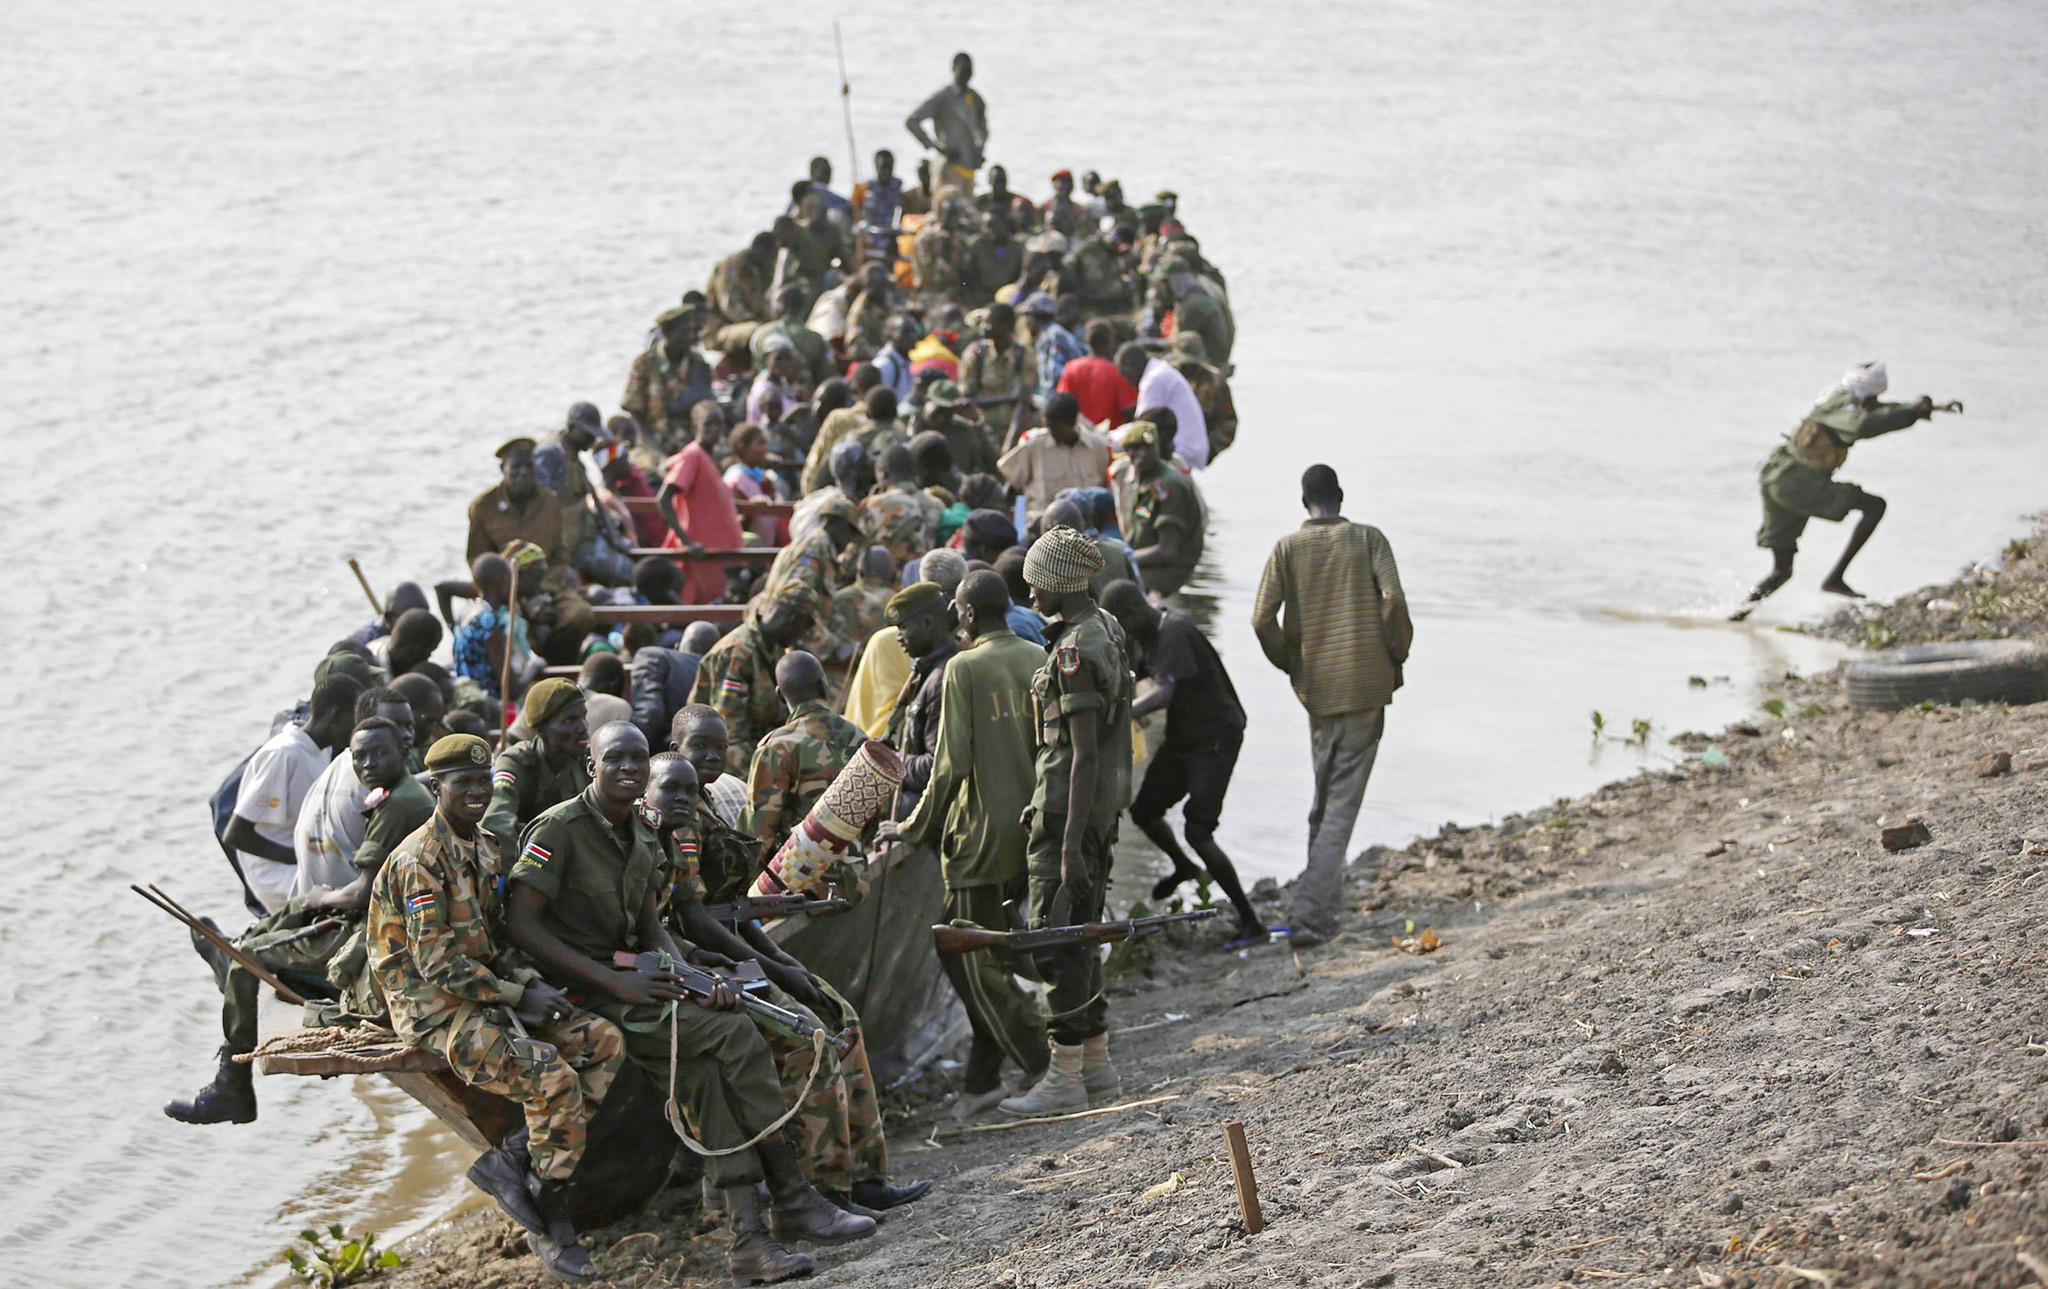 REUTERS PICTURE HIGHLIGHT...ATTENTION EDITORS - REUTERS PICTURE HIGHLIGHT TRANSMITTED BY 1335 GMT ON FEBRUARY 7, 2014    GOT10  Civilians and rebel fighters are seen on a boat in Sobat river in town of Ulang in Upper Nile State.